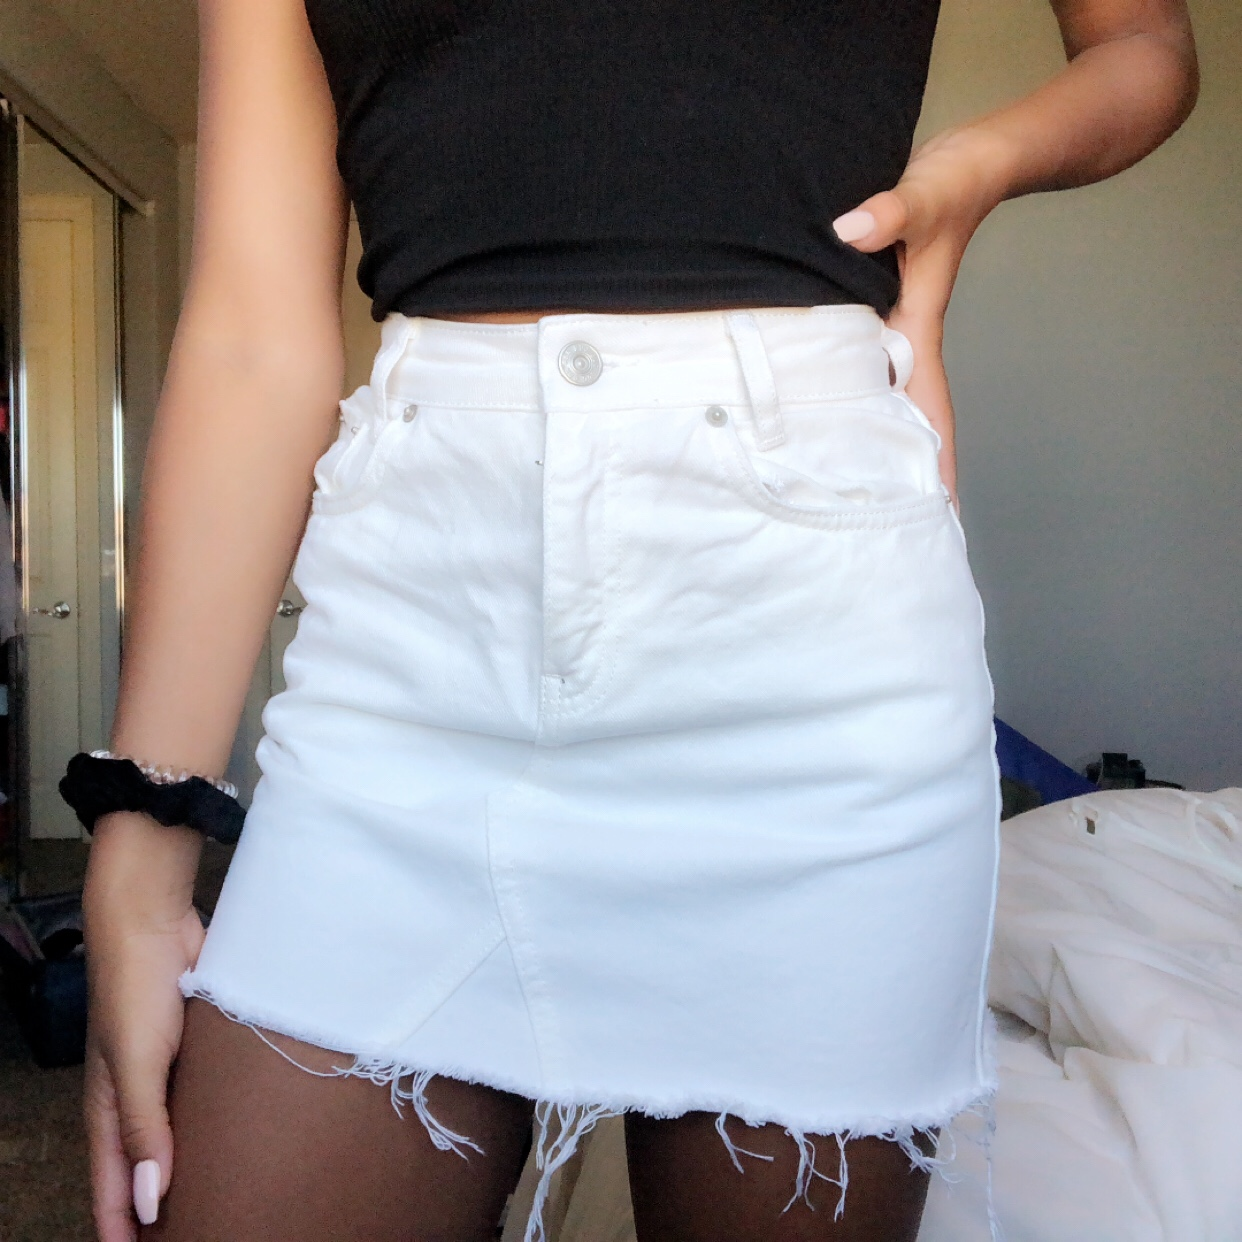 new style & luxury 2018 sneakers 2019 best urban outfitters bdg White denim skirt •size... - Depop